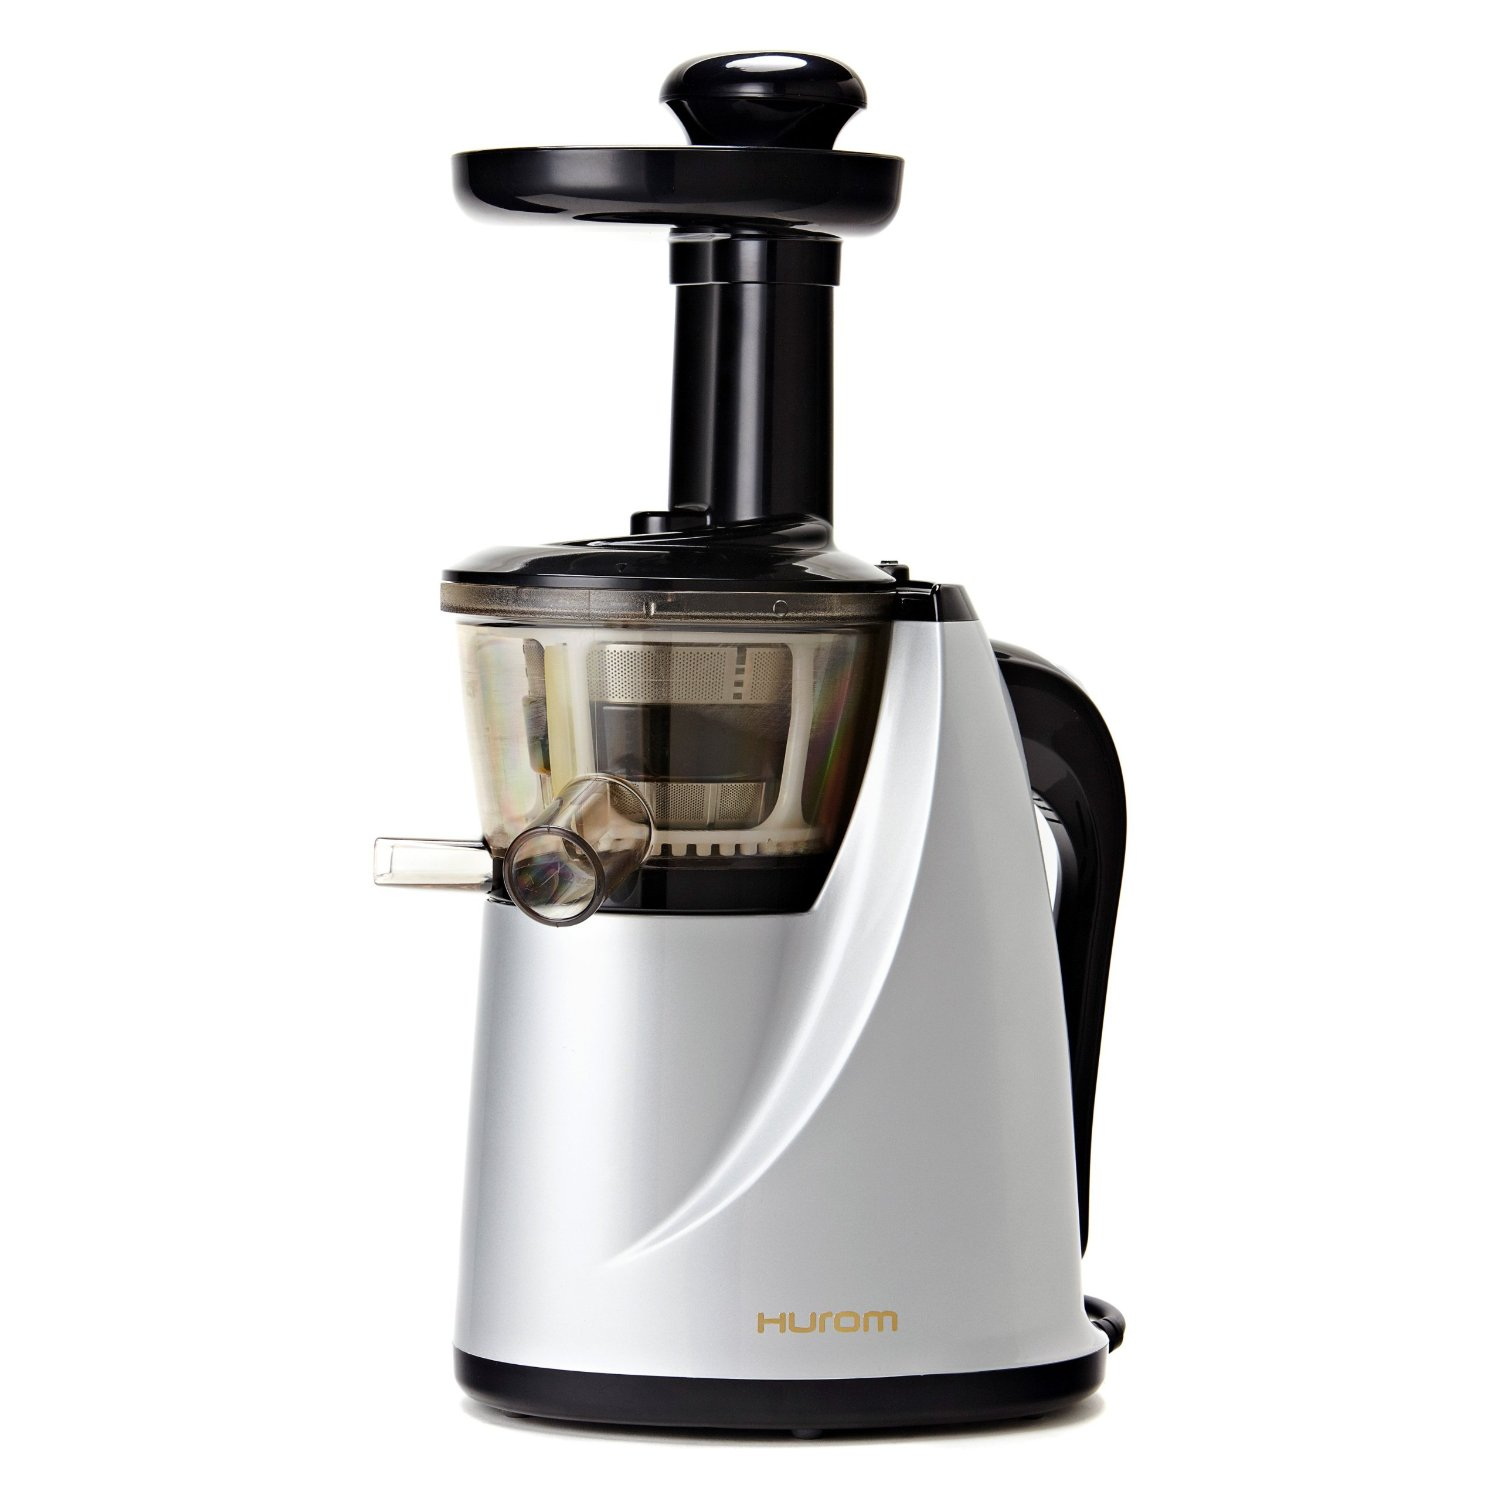 Hurom Slow Juicer Reviews : Hurom HU-100 Masticating Slow Juicer Review - Best Cold Press Juicers